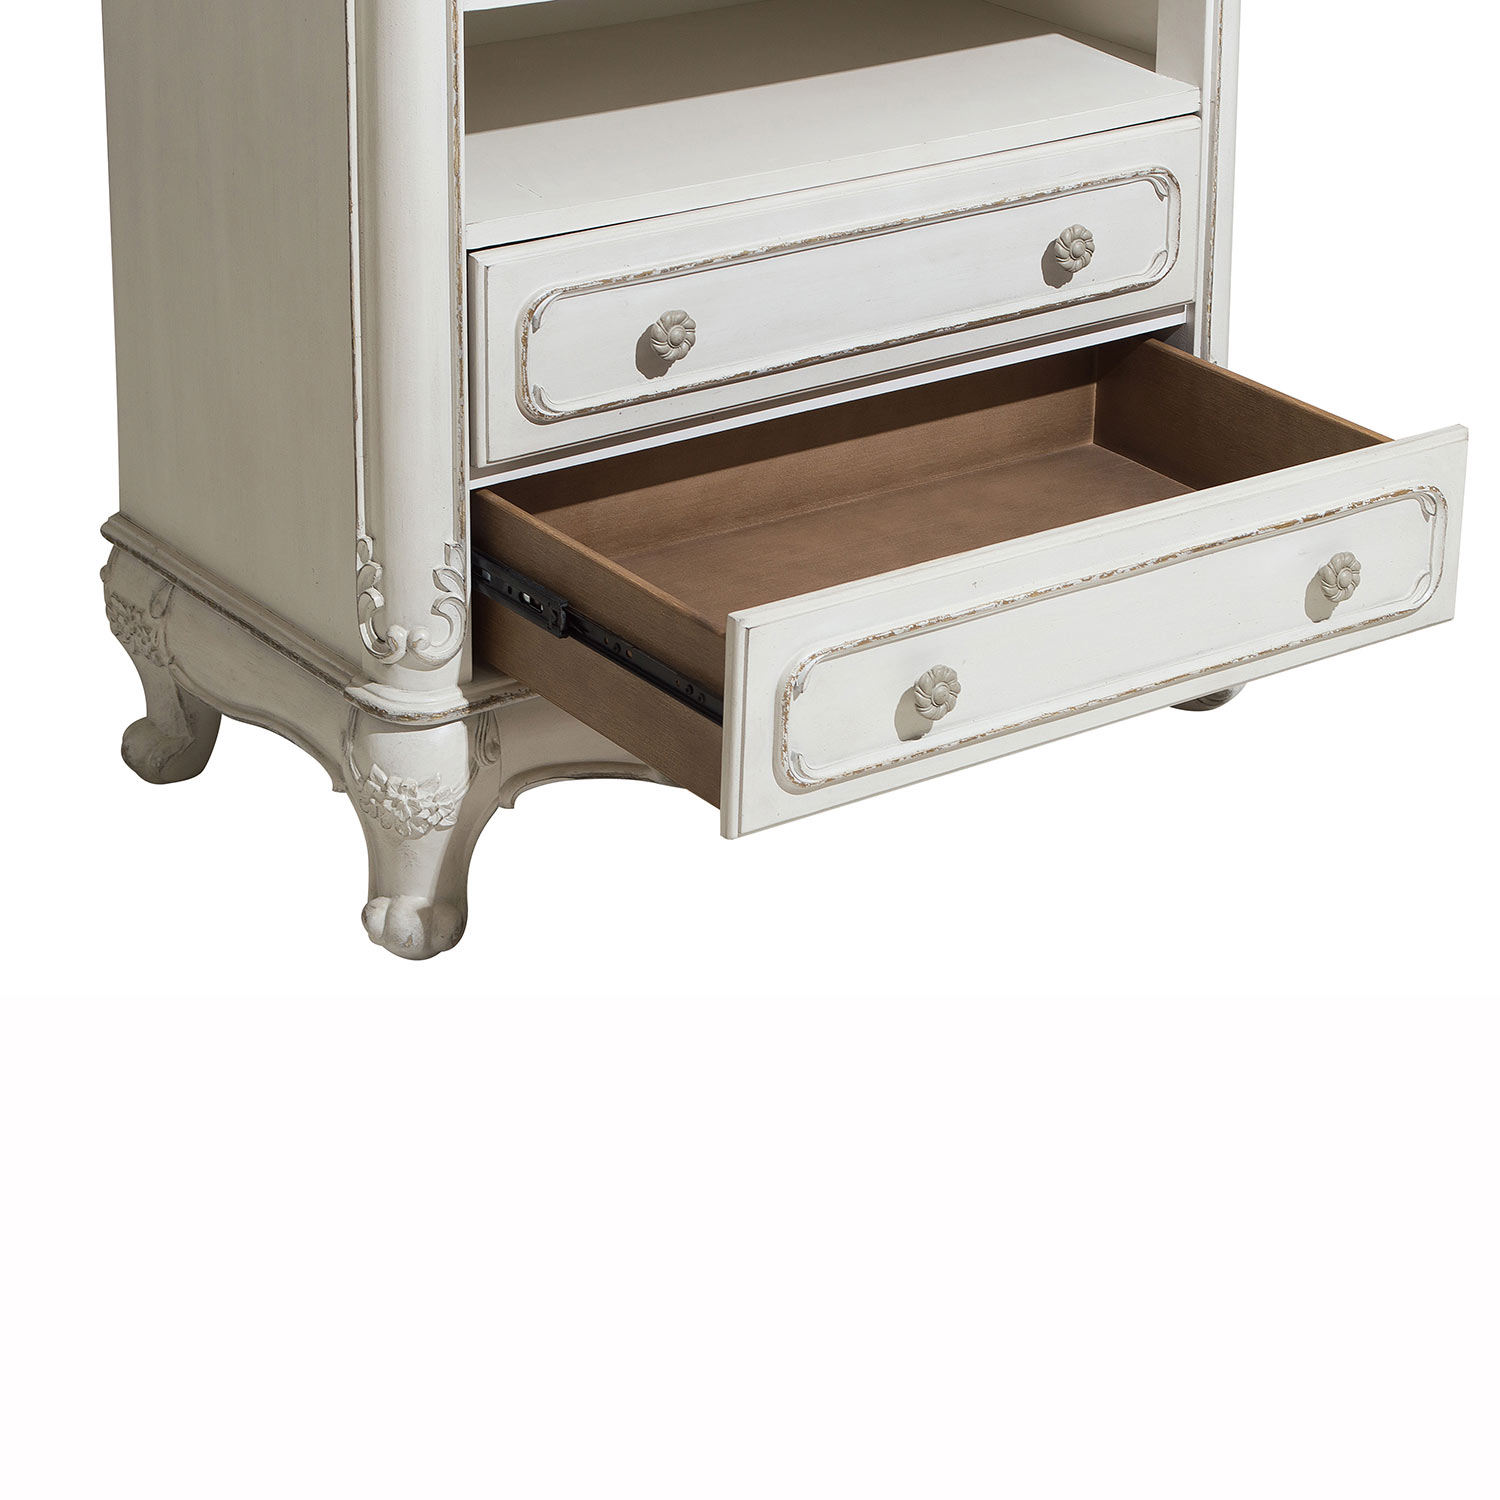 Homelegance Cinderella Armoire - Antique White with Gray Rub-Through